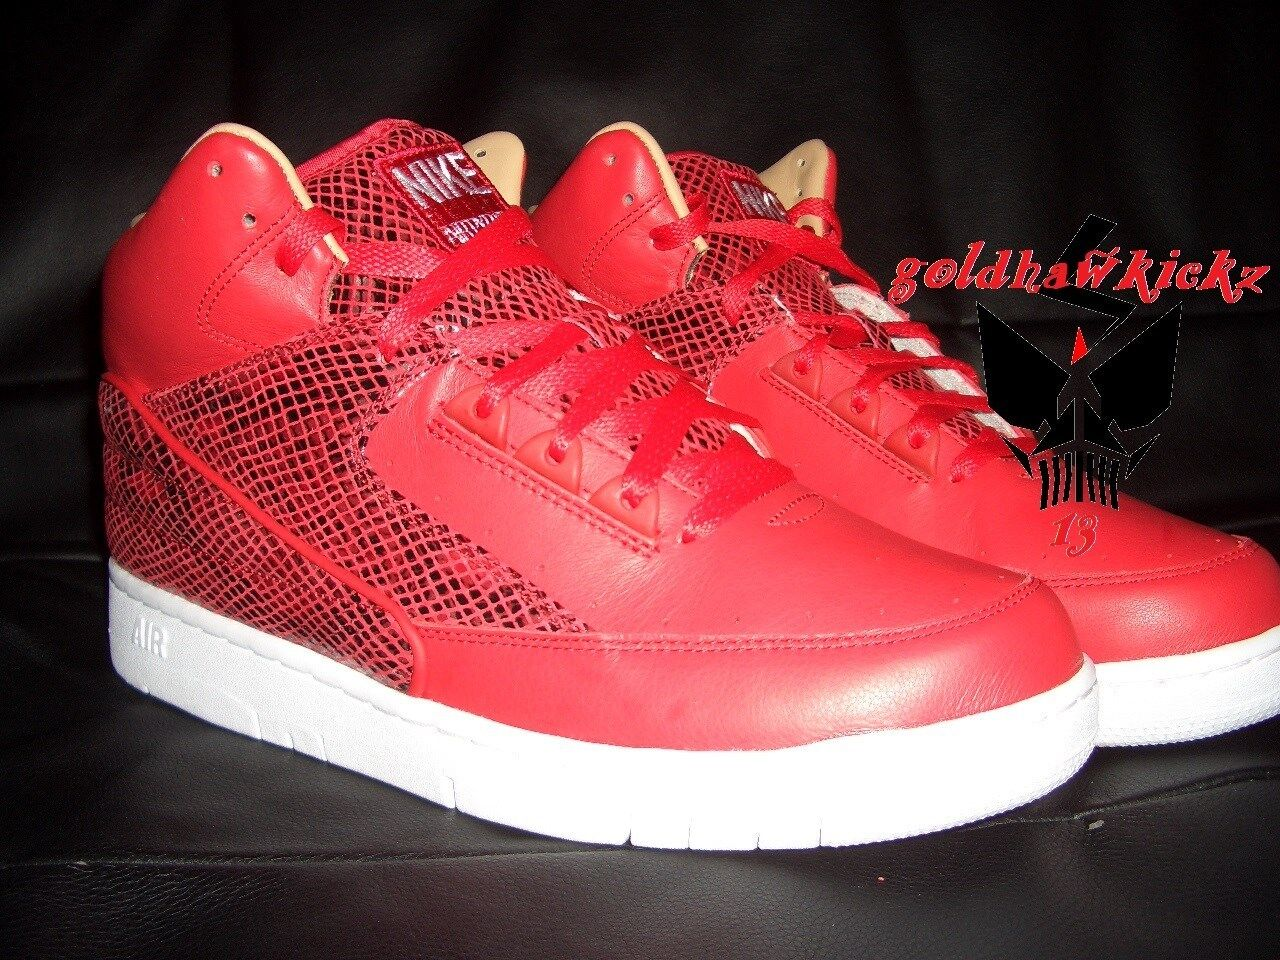 Nike Air Python Retro SP Lux Pelle University Red Red Red White 632631-601 snake 9ca0b5